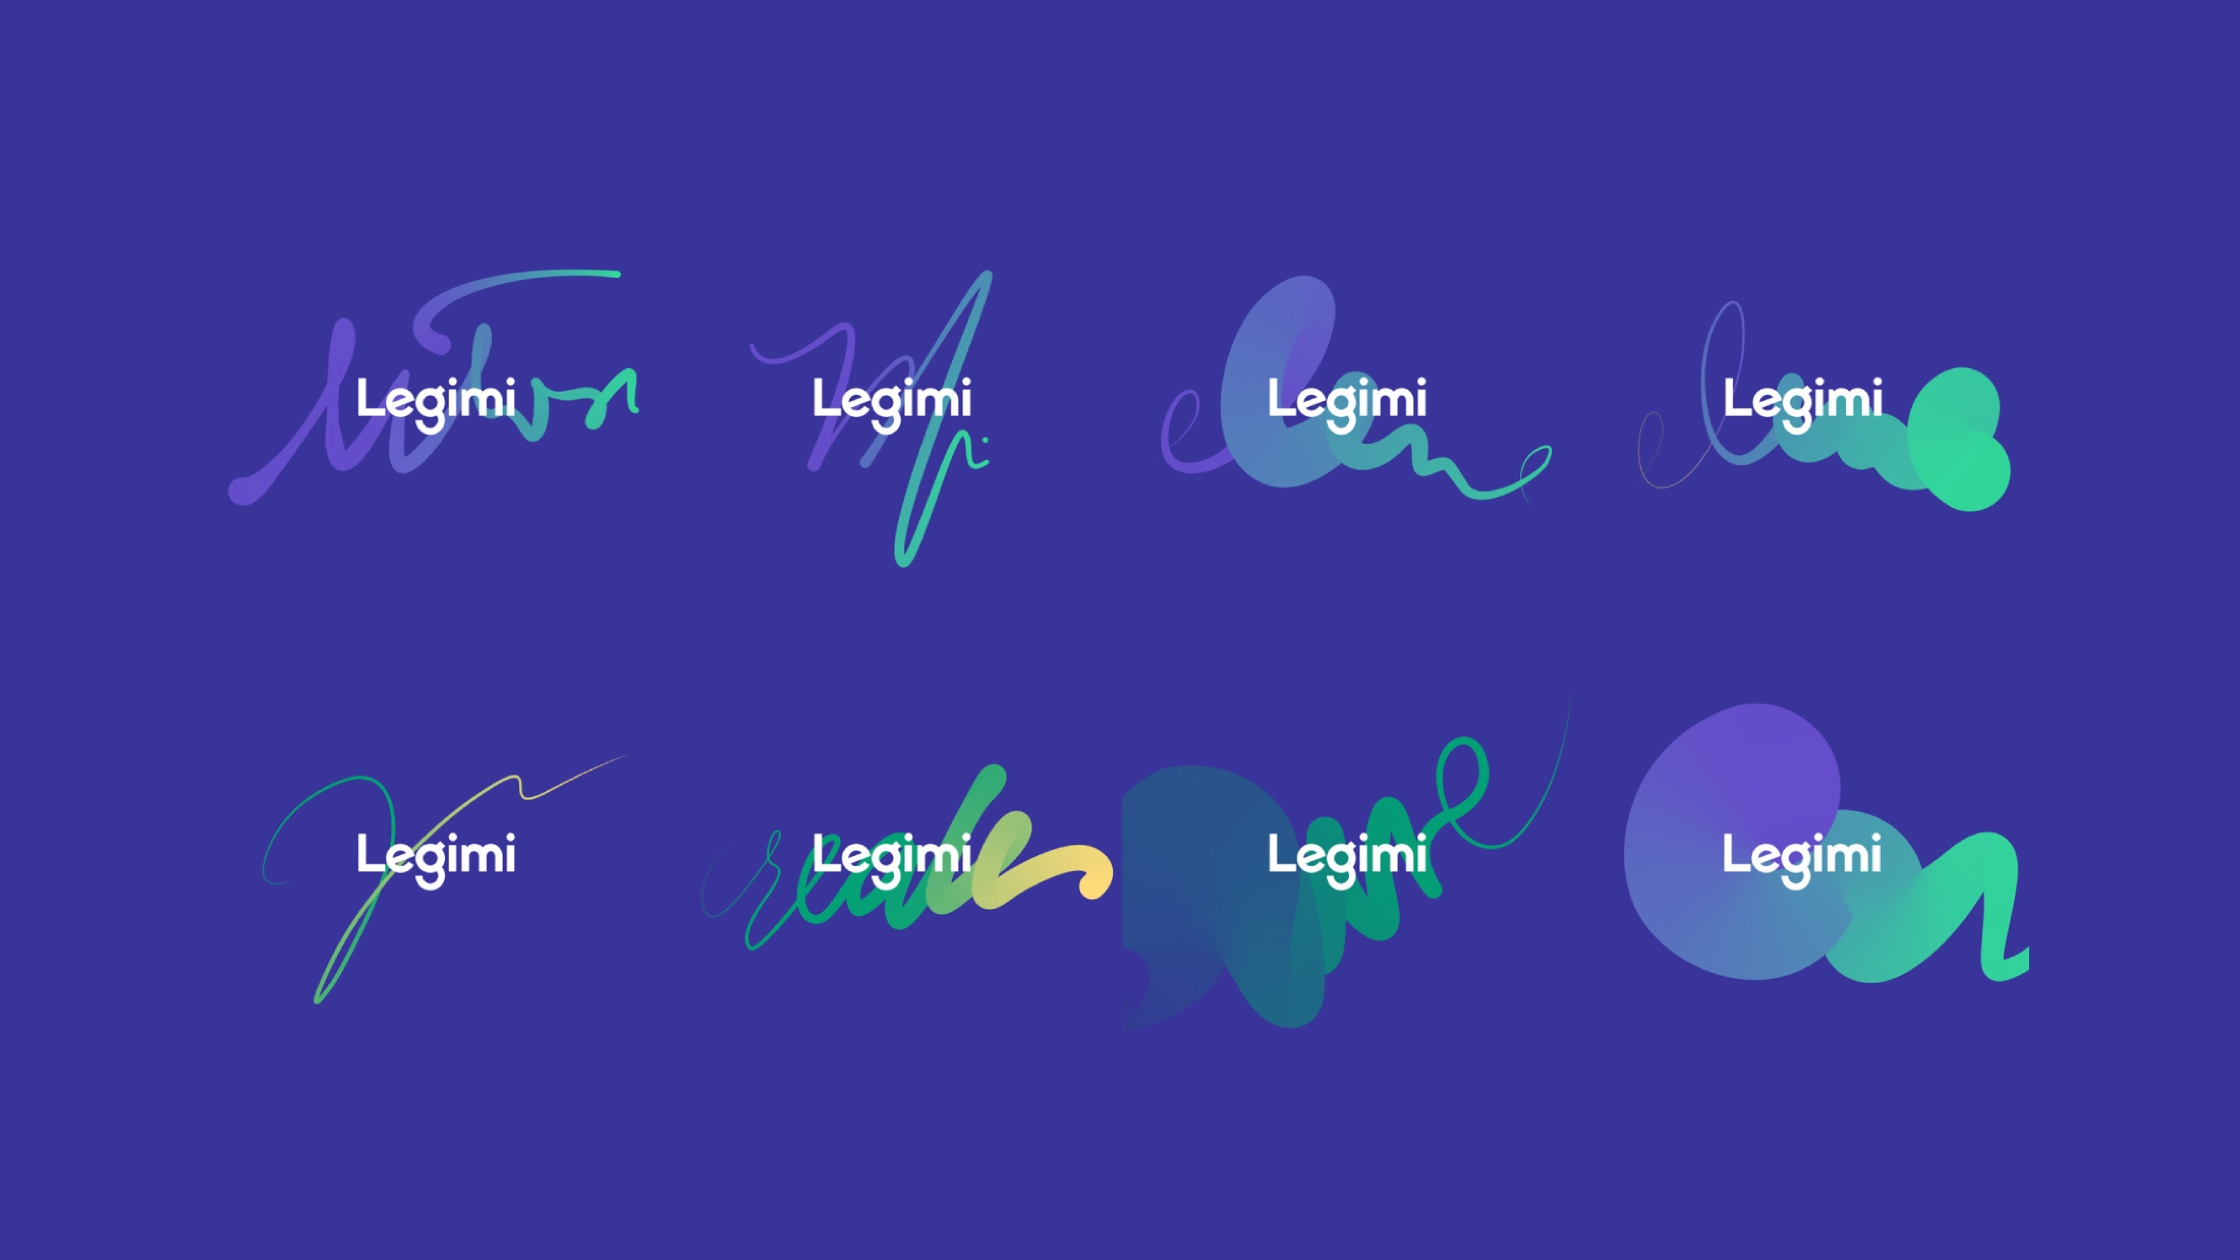 Key visuals - Legimi by Uniforma